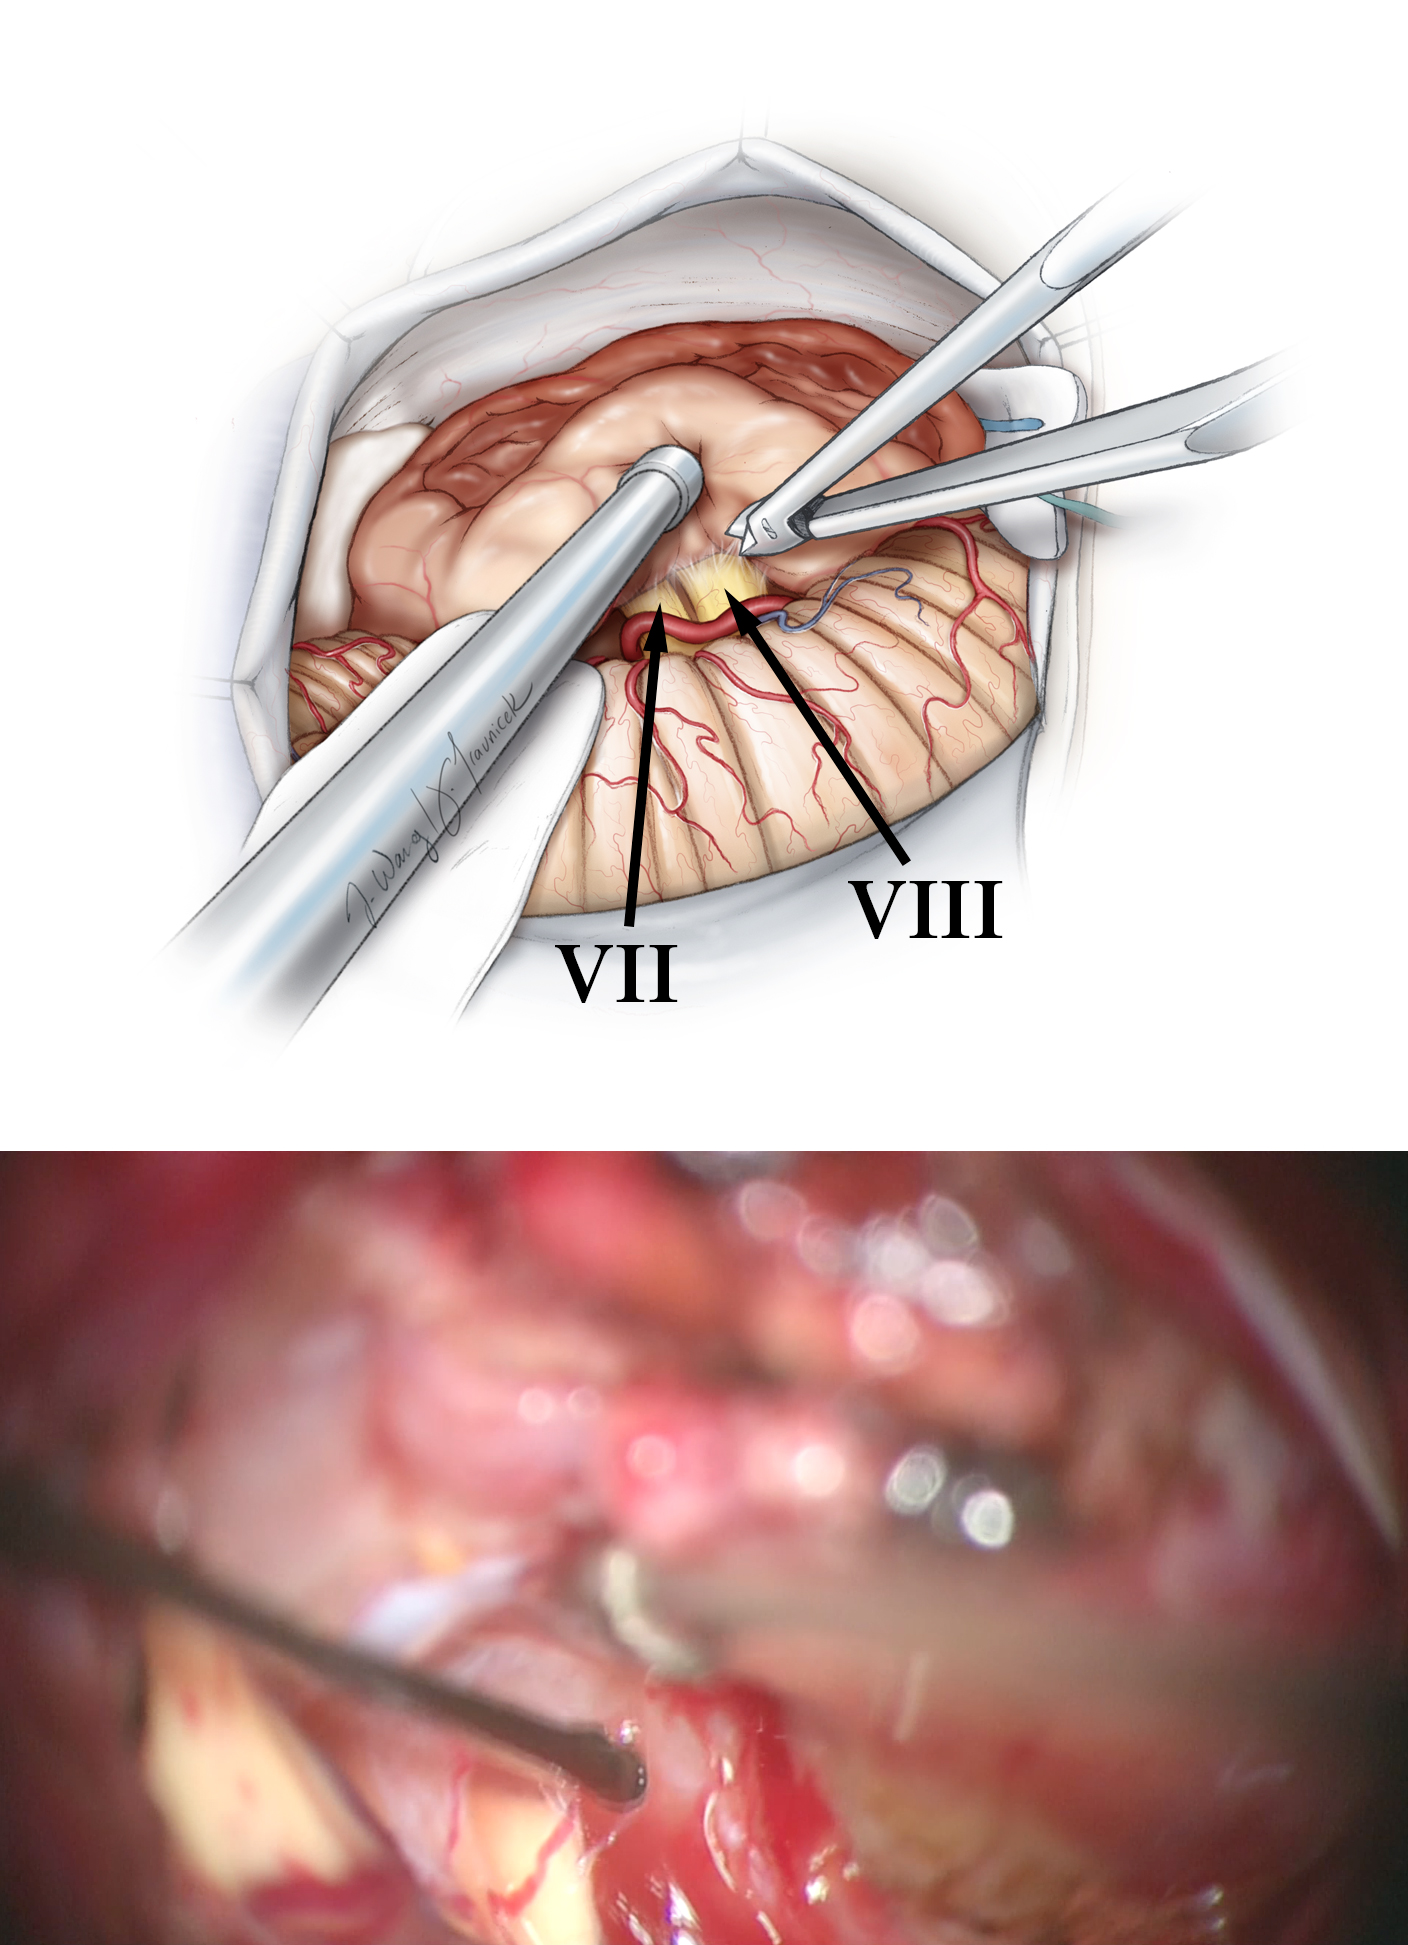 Figure 13: Sharp dissection techniques and attentive internal decompression of the residual tumor will facilitate mobilization of the capsule. The nerve is stimulated at 0.07 mA along its length so that its path on the tumor capsule can be tracked. I place gentle tension on the tumor capsule and then peel the nerve away from the tumor (top image). CN VIII is identified and sacrificed in patients with larger tumors after its stimulation mapping (bottom image).